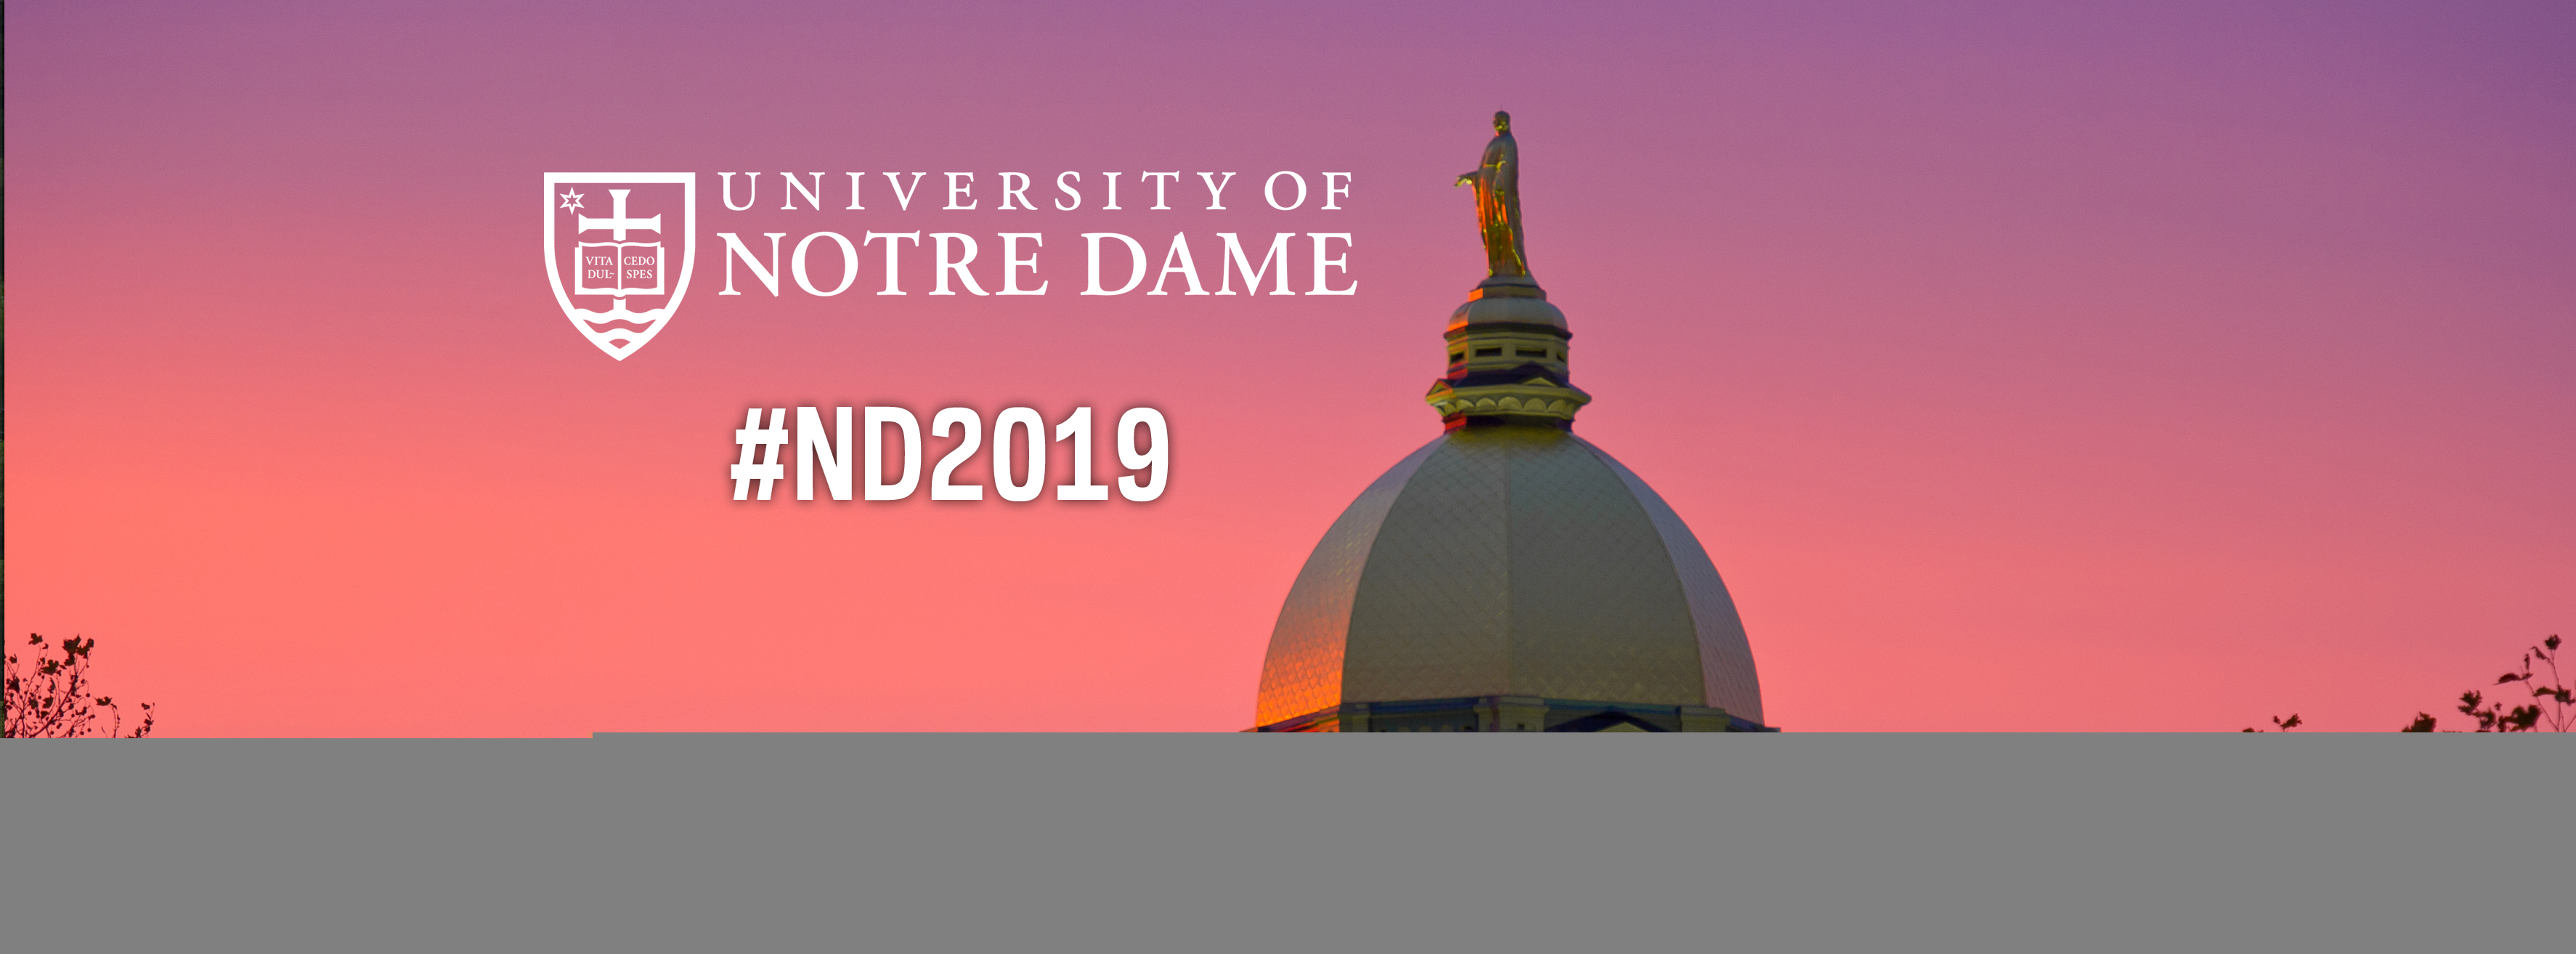 Class of 2019 Cover Photos  Undergraduate Admissions  University of Notre Dame